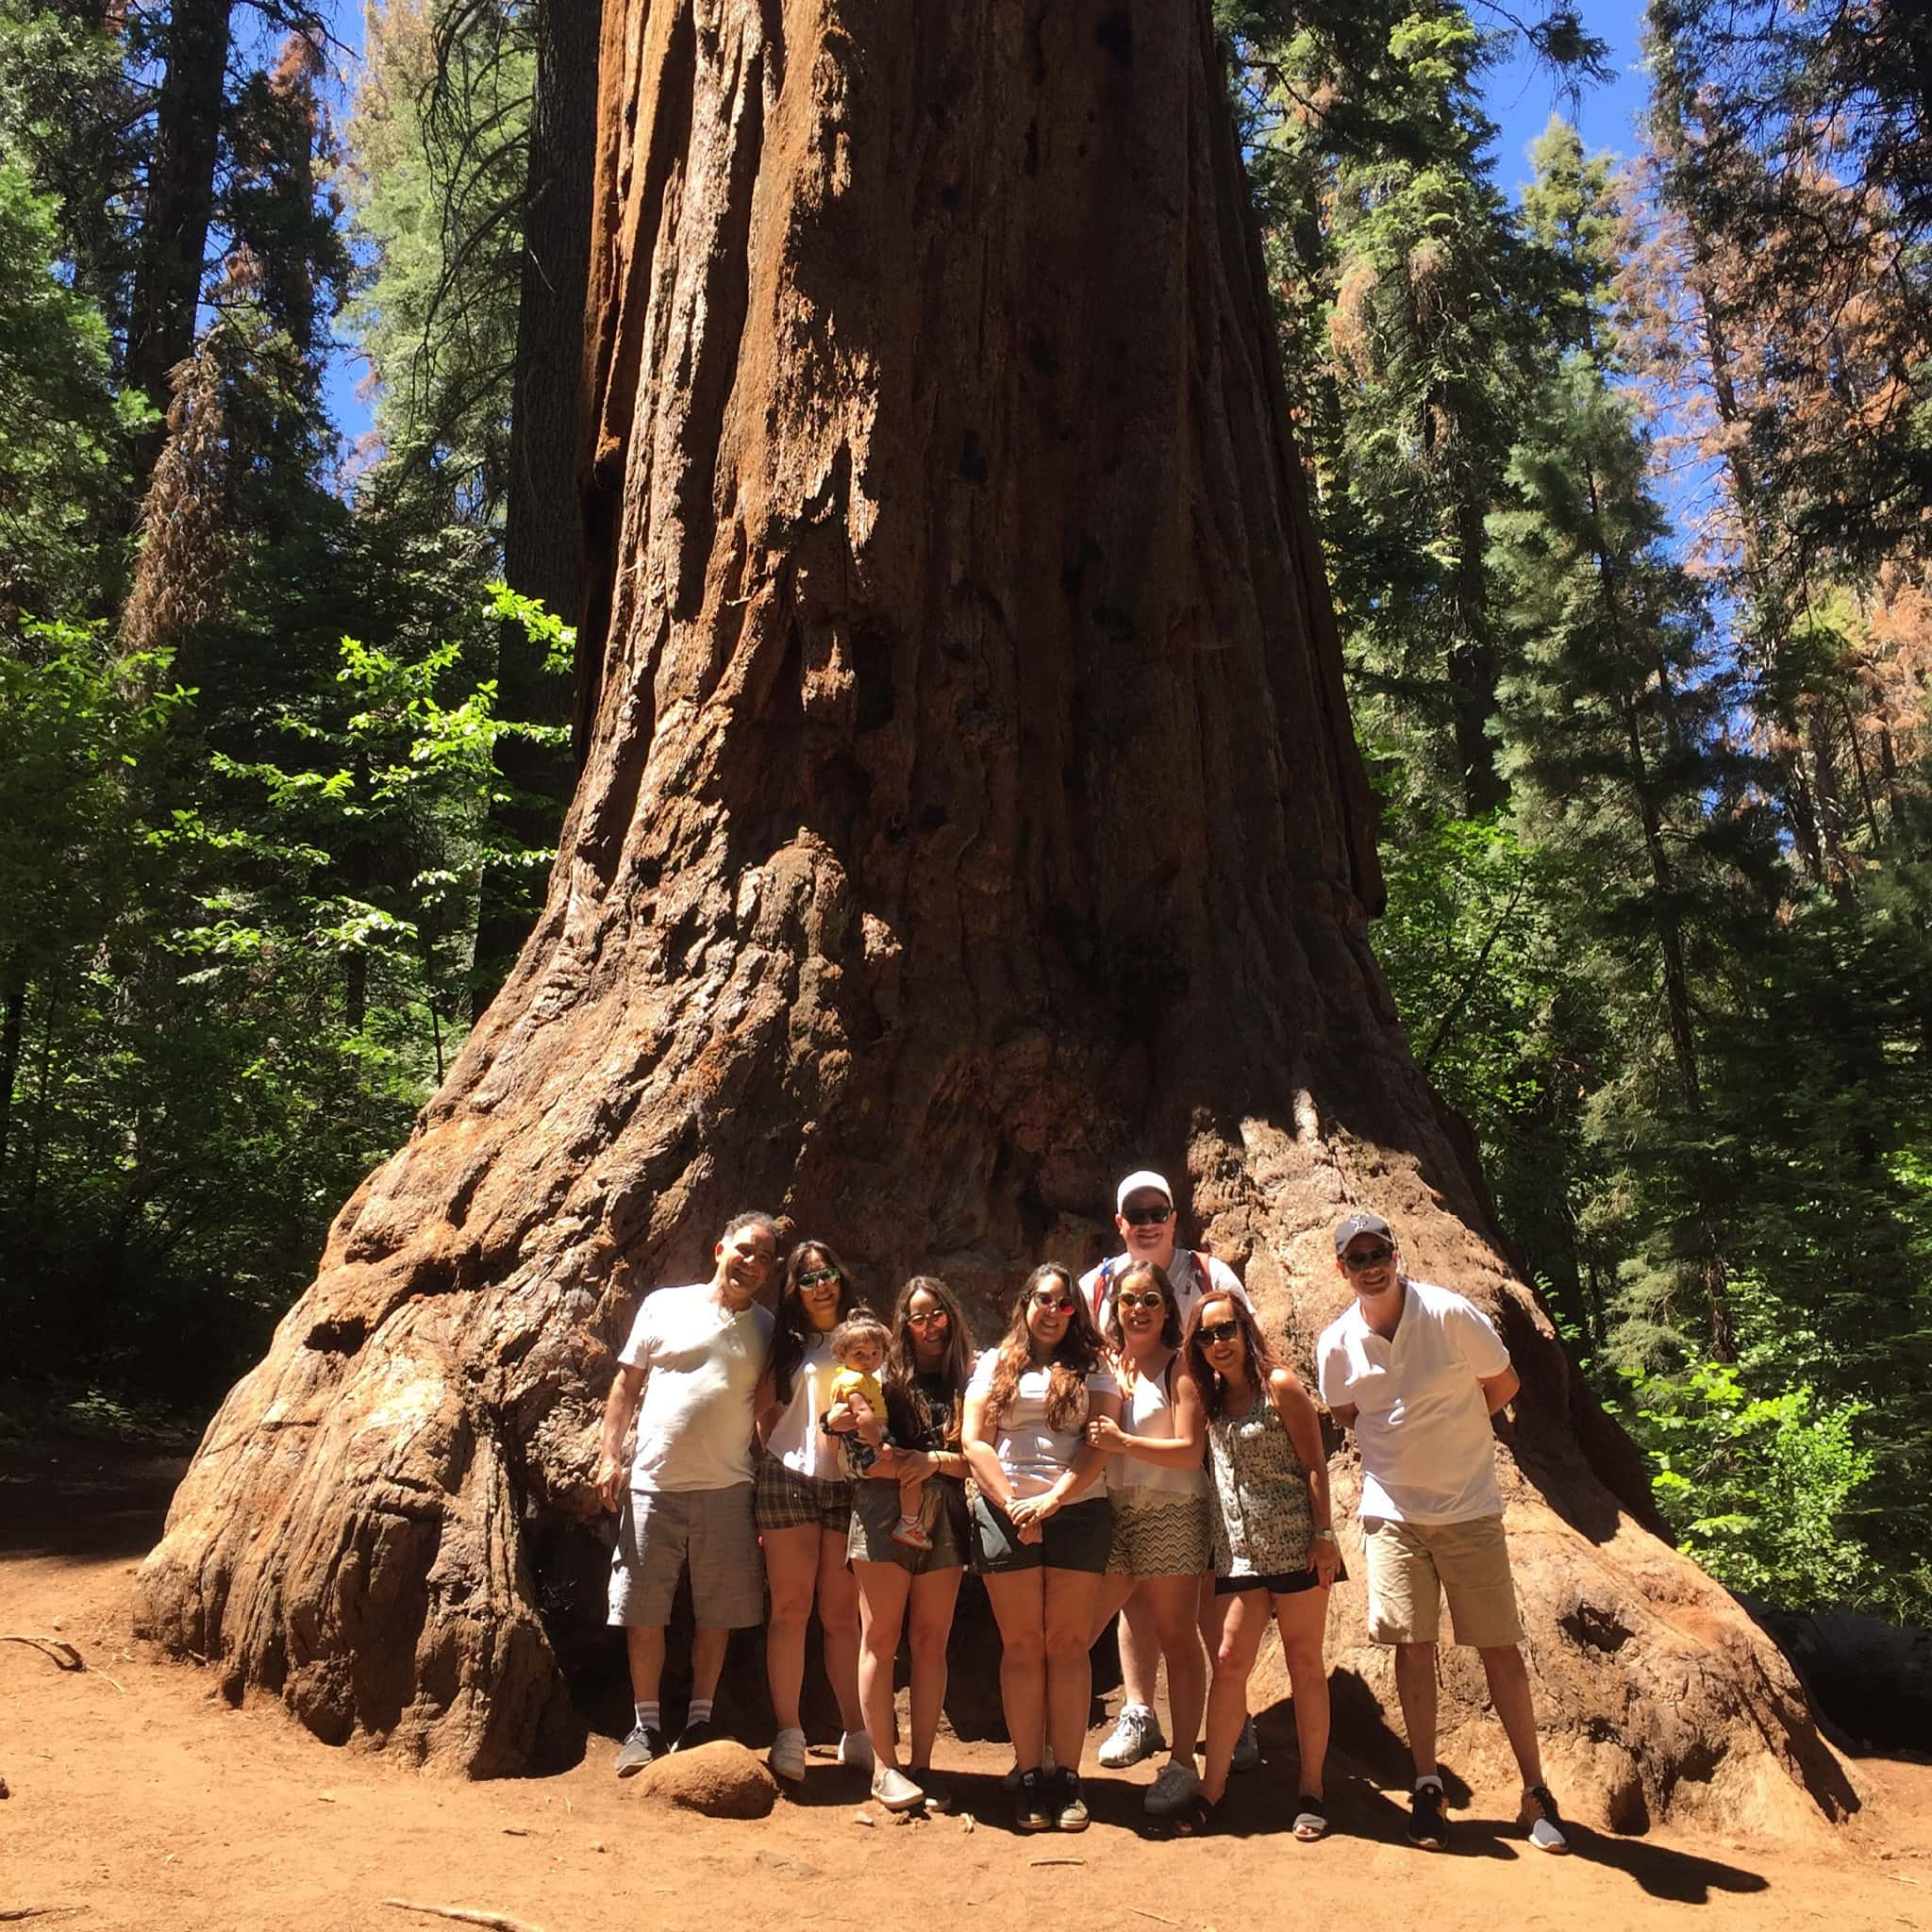 Where to Find Redwood Trees in Yosemite